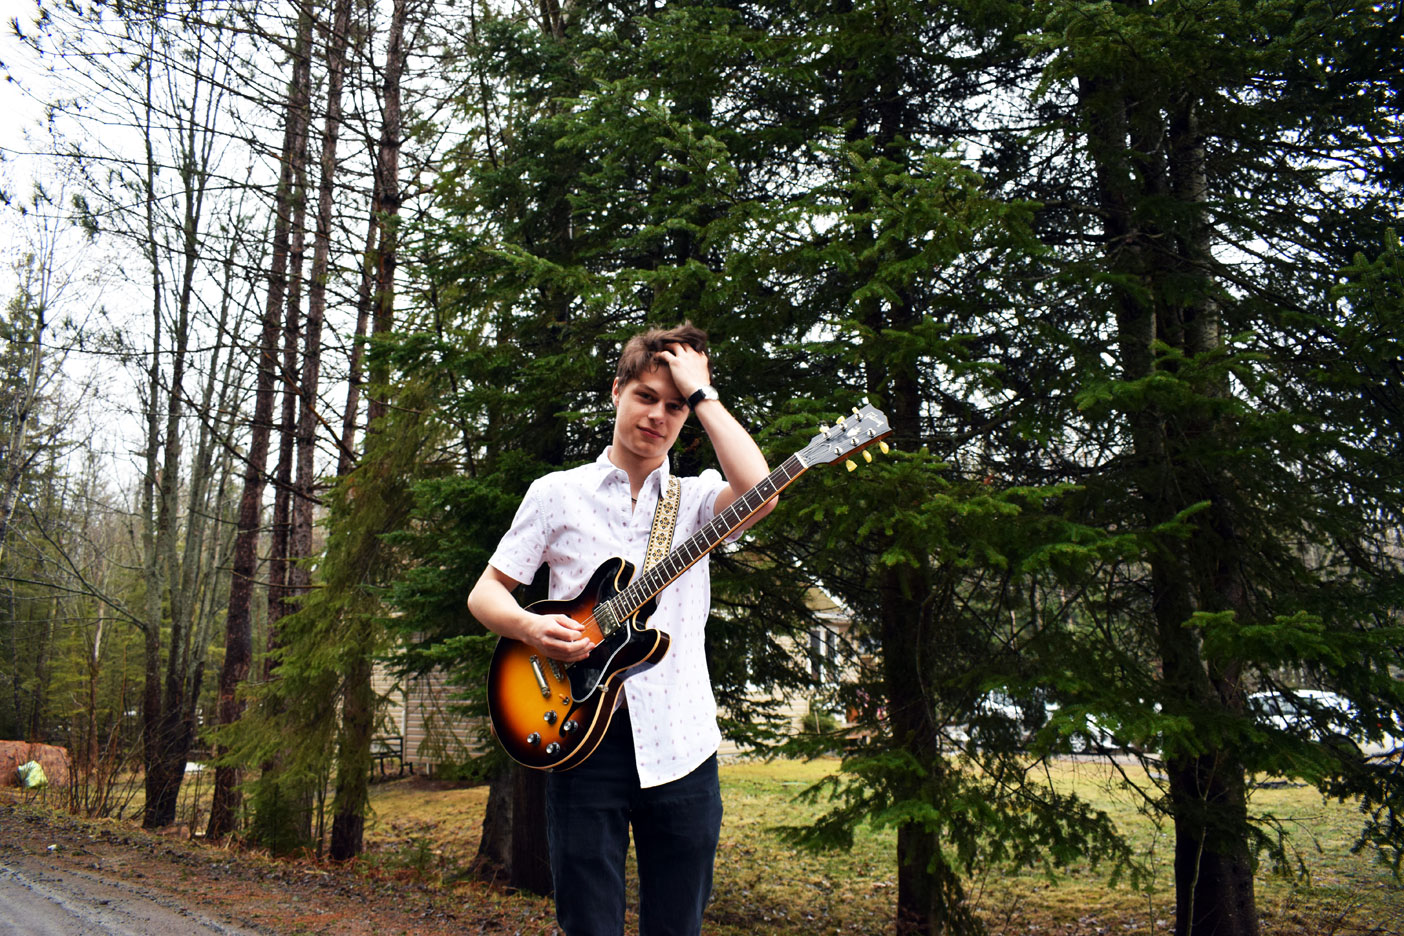 Jack Nickalls is brains and talent all rolled into one. This Huntsville musician will be performing at the Muskoka Jazz Festival this summer with his long-time friend Josie Robinson.